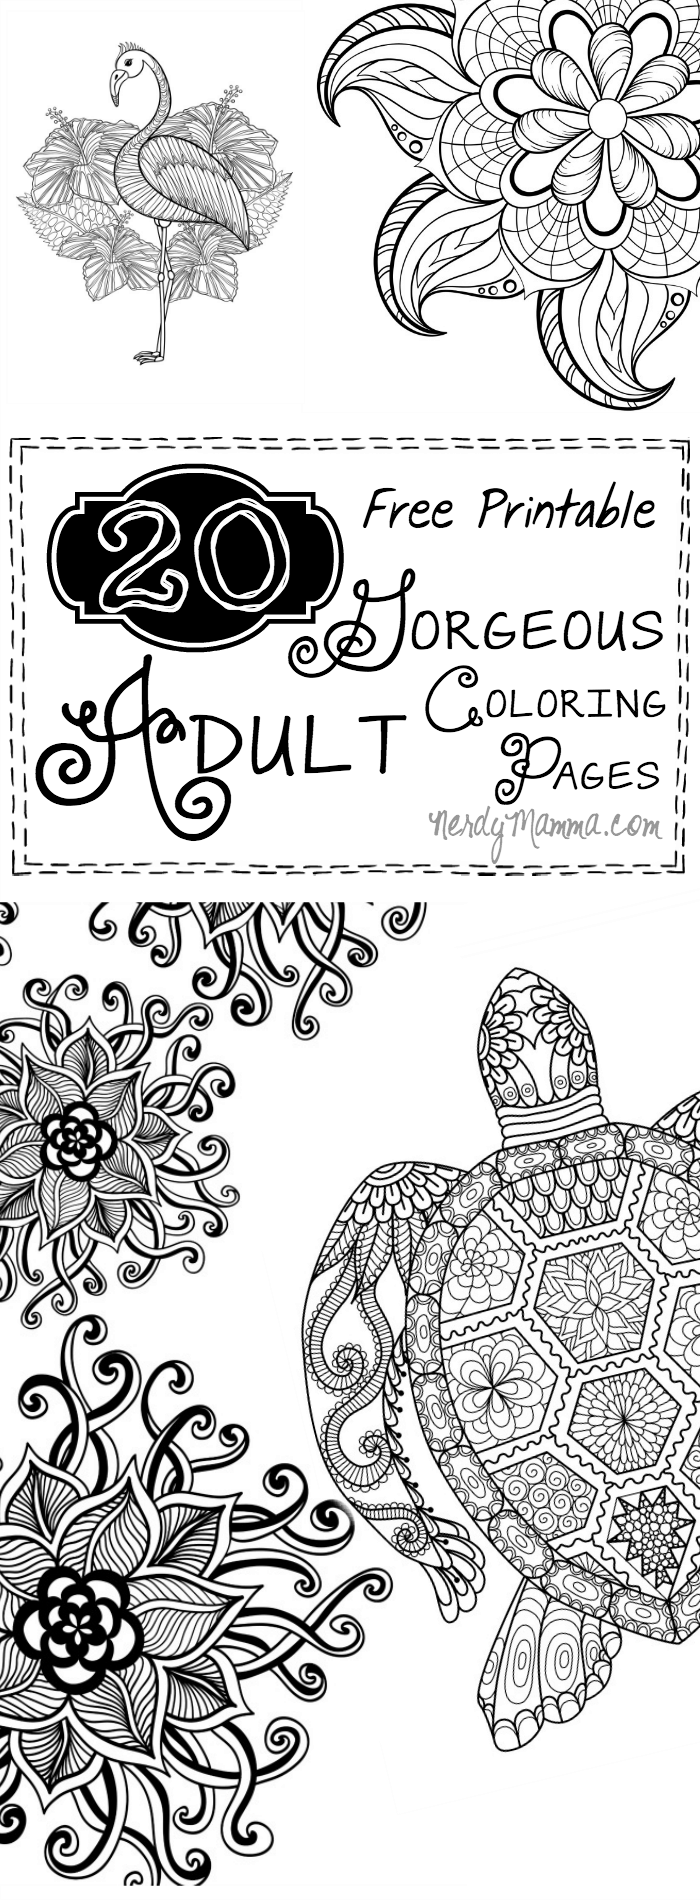 Picture for coloring printable - These 20 Free Printable Gorgeous Adult Coloring Pages Are So Pretty I M Thinking